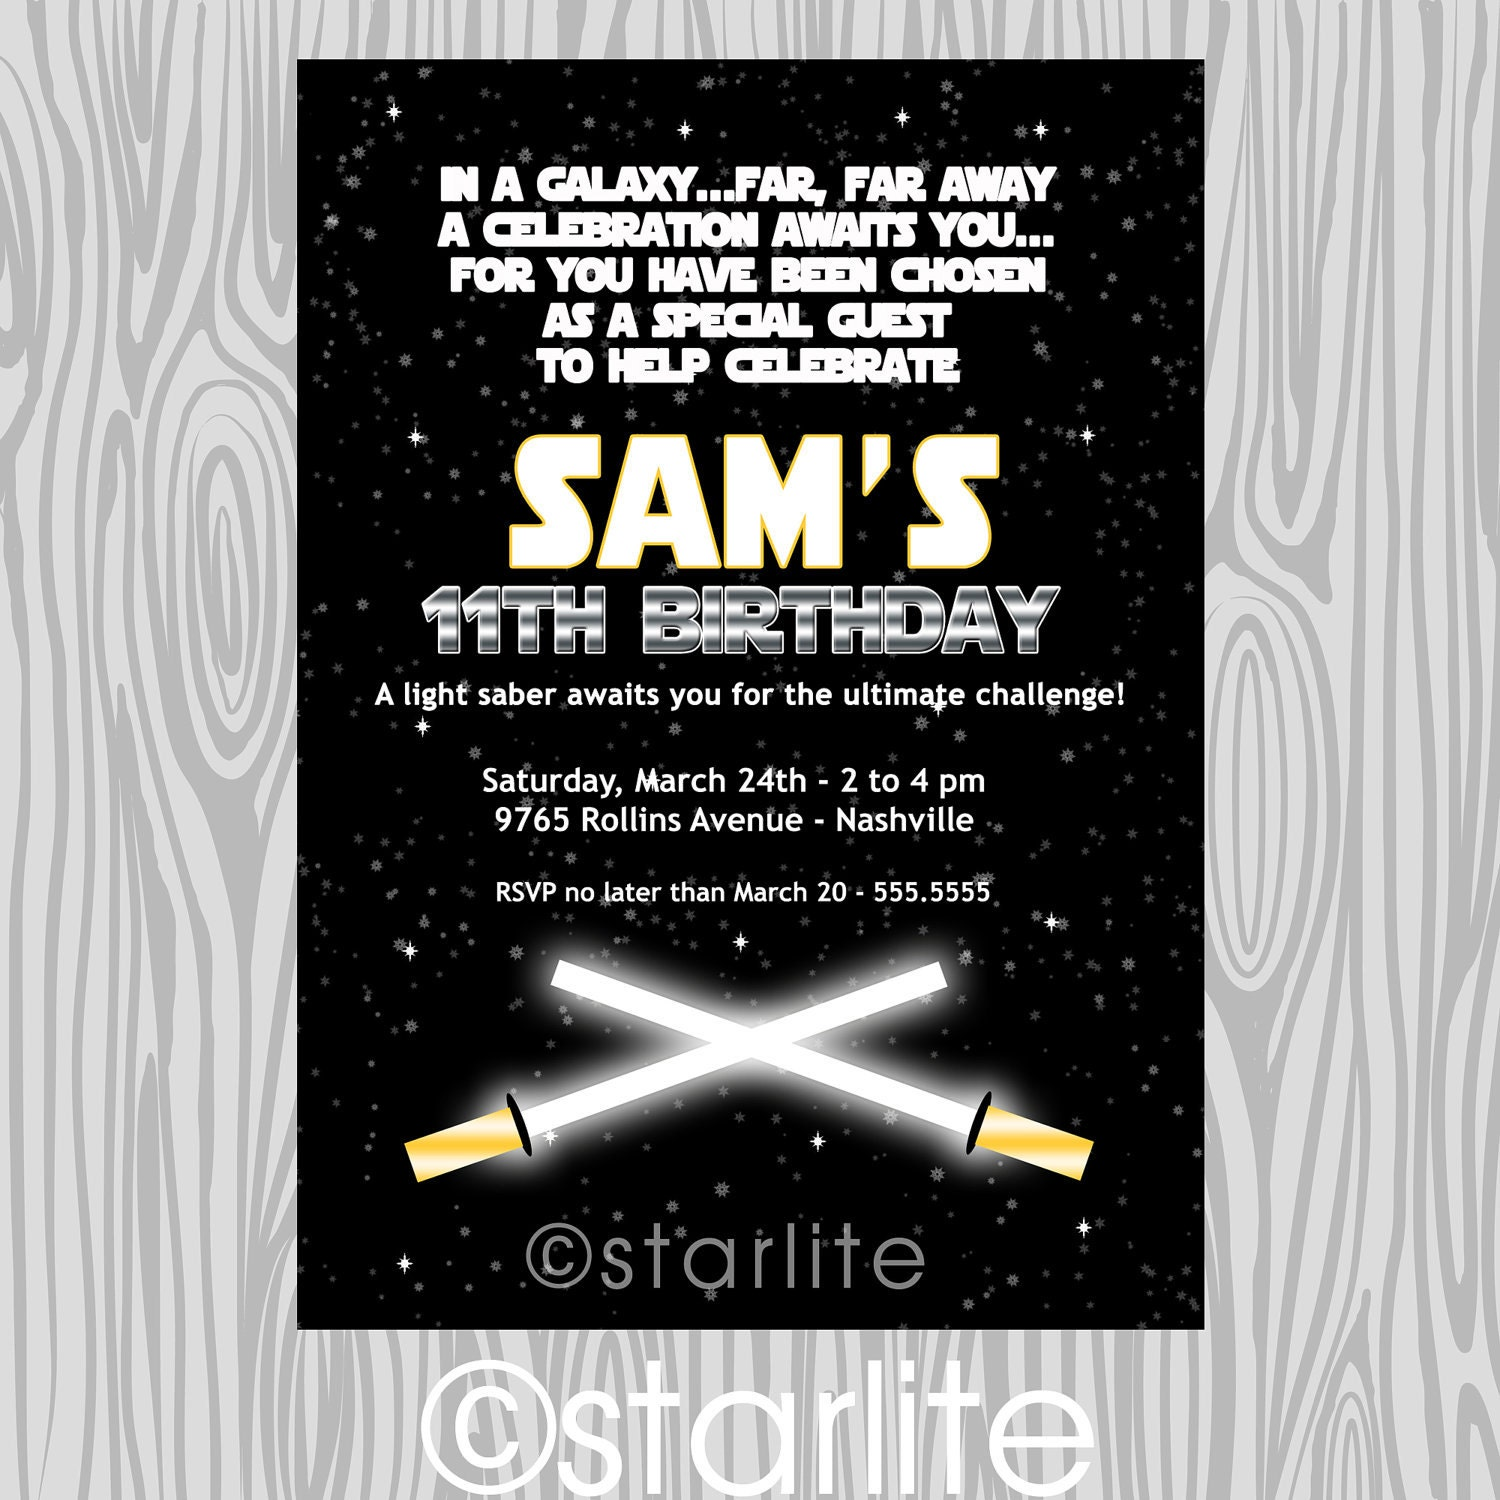 Star Wars Birthday Invitation Template Free with luxury invitation sample